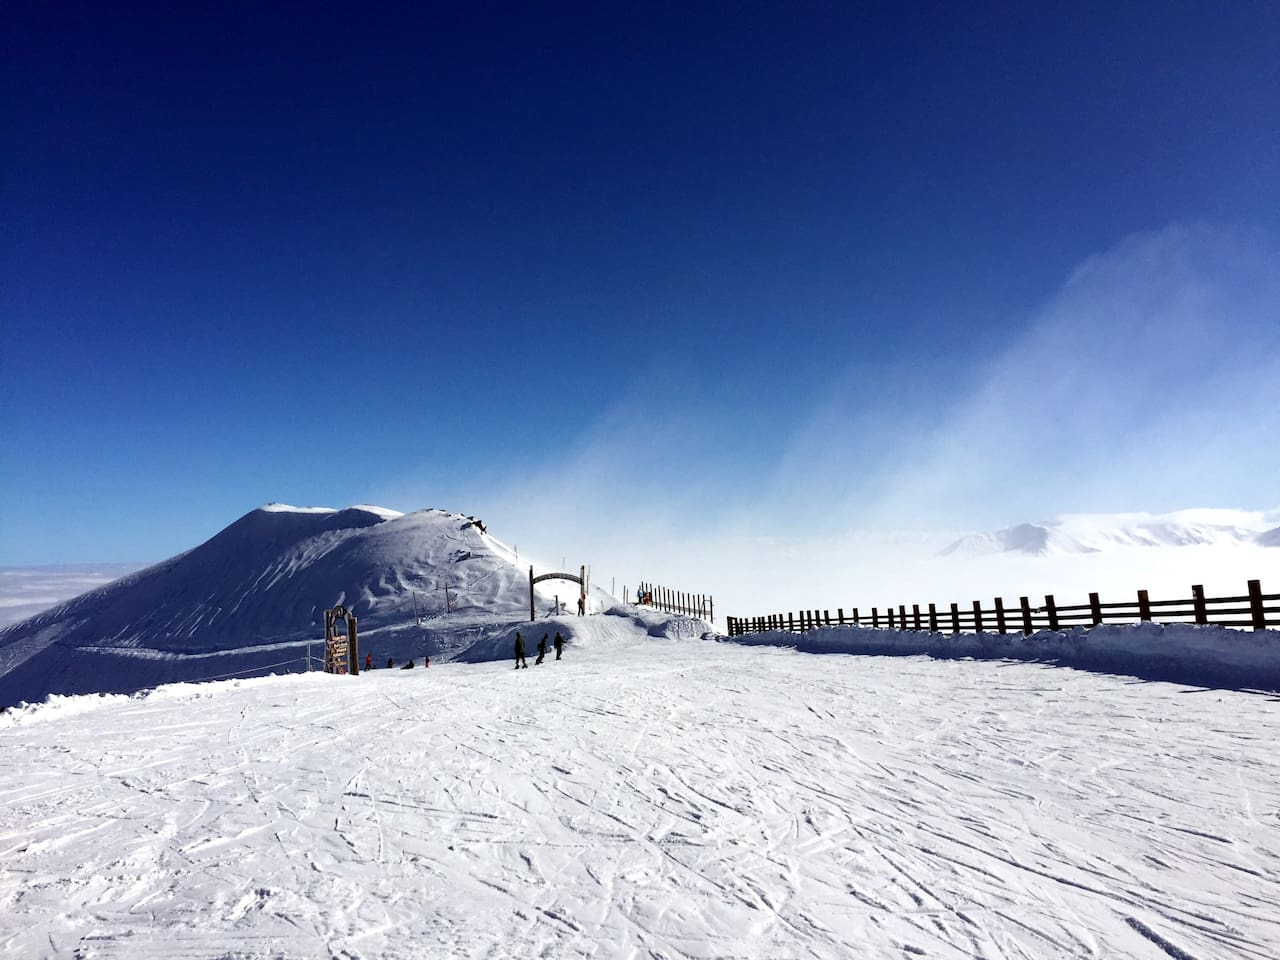 Here's the summit of Mt Hutt skifield. Ski every day here or at Porter Heights.